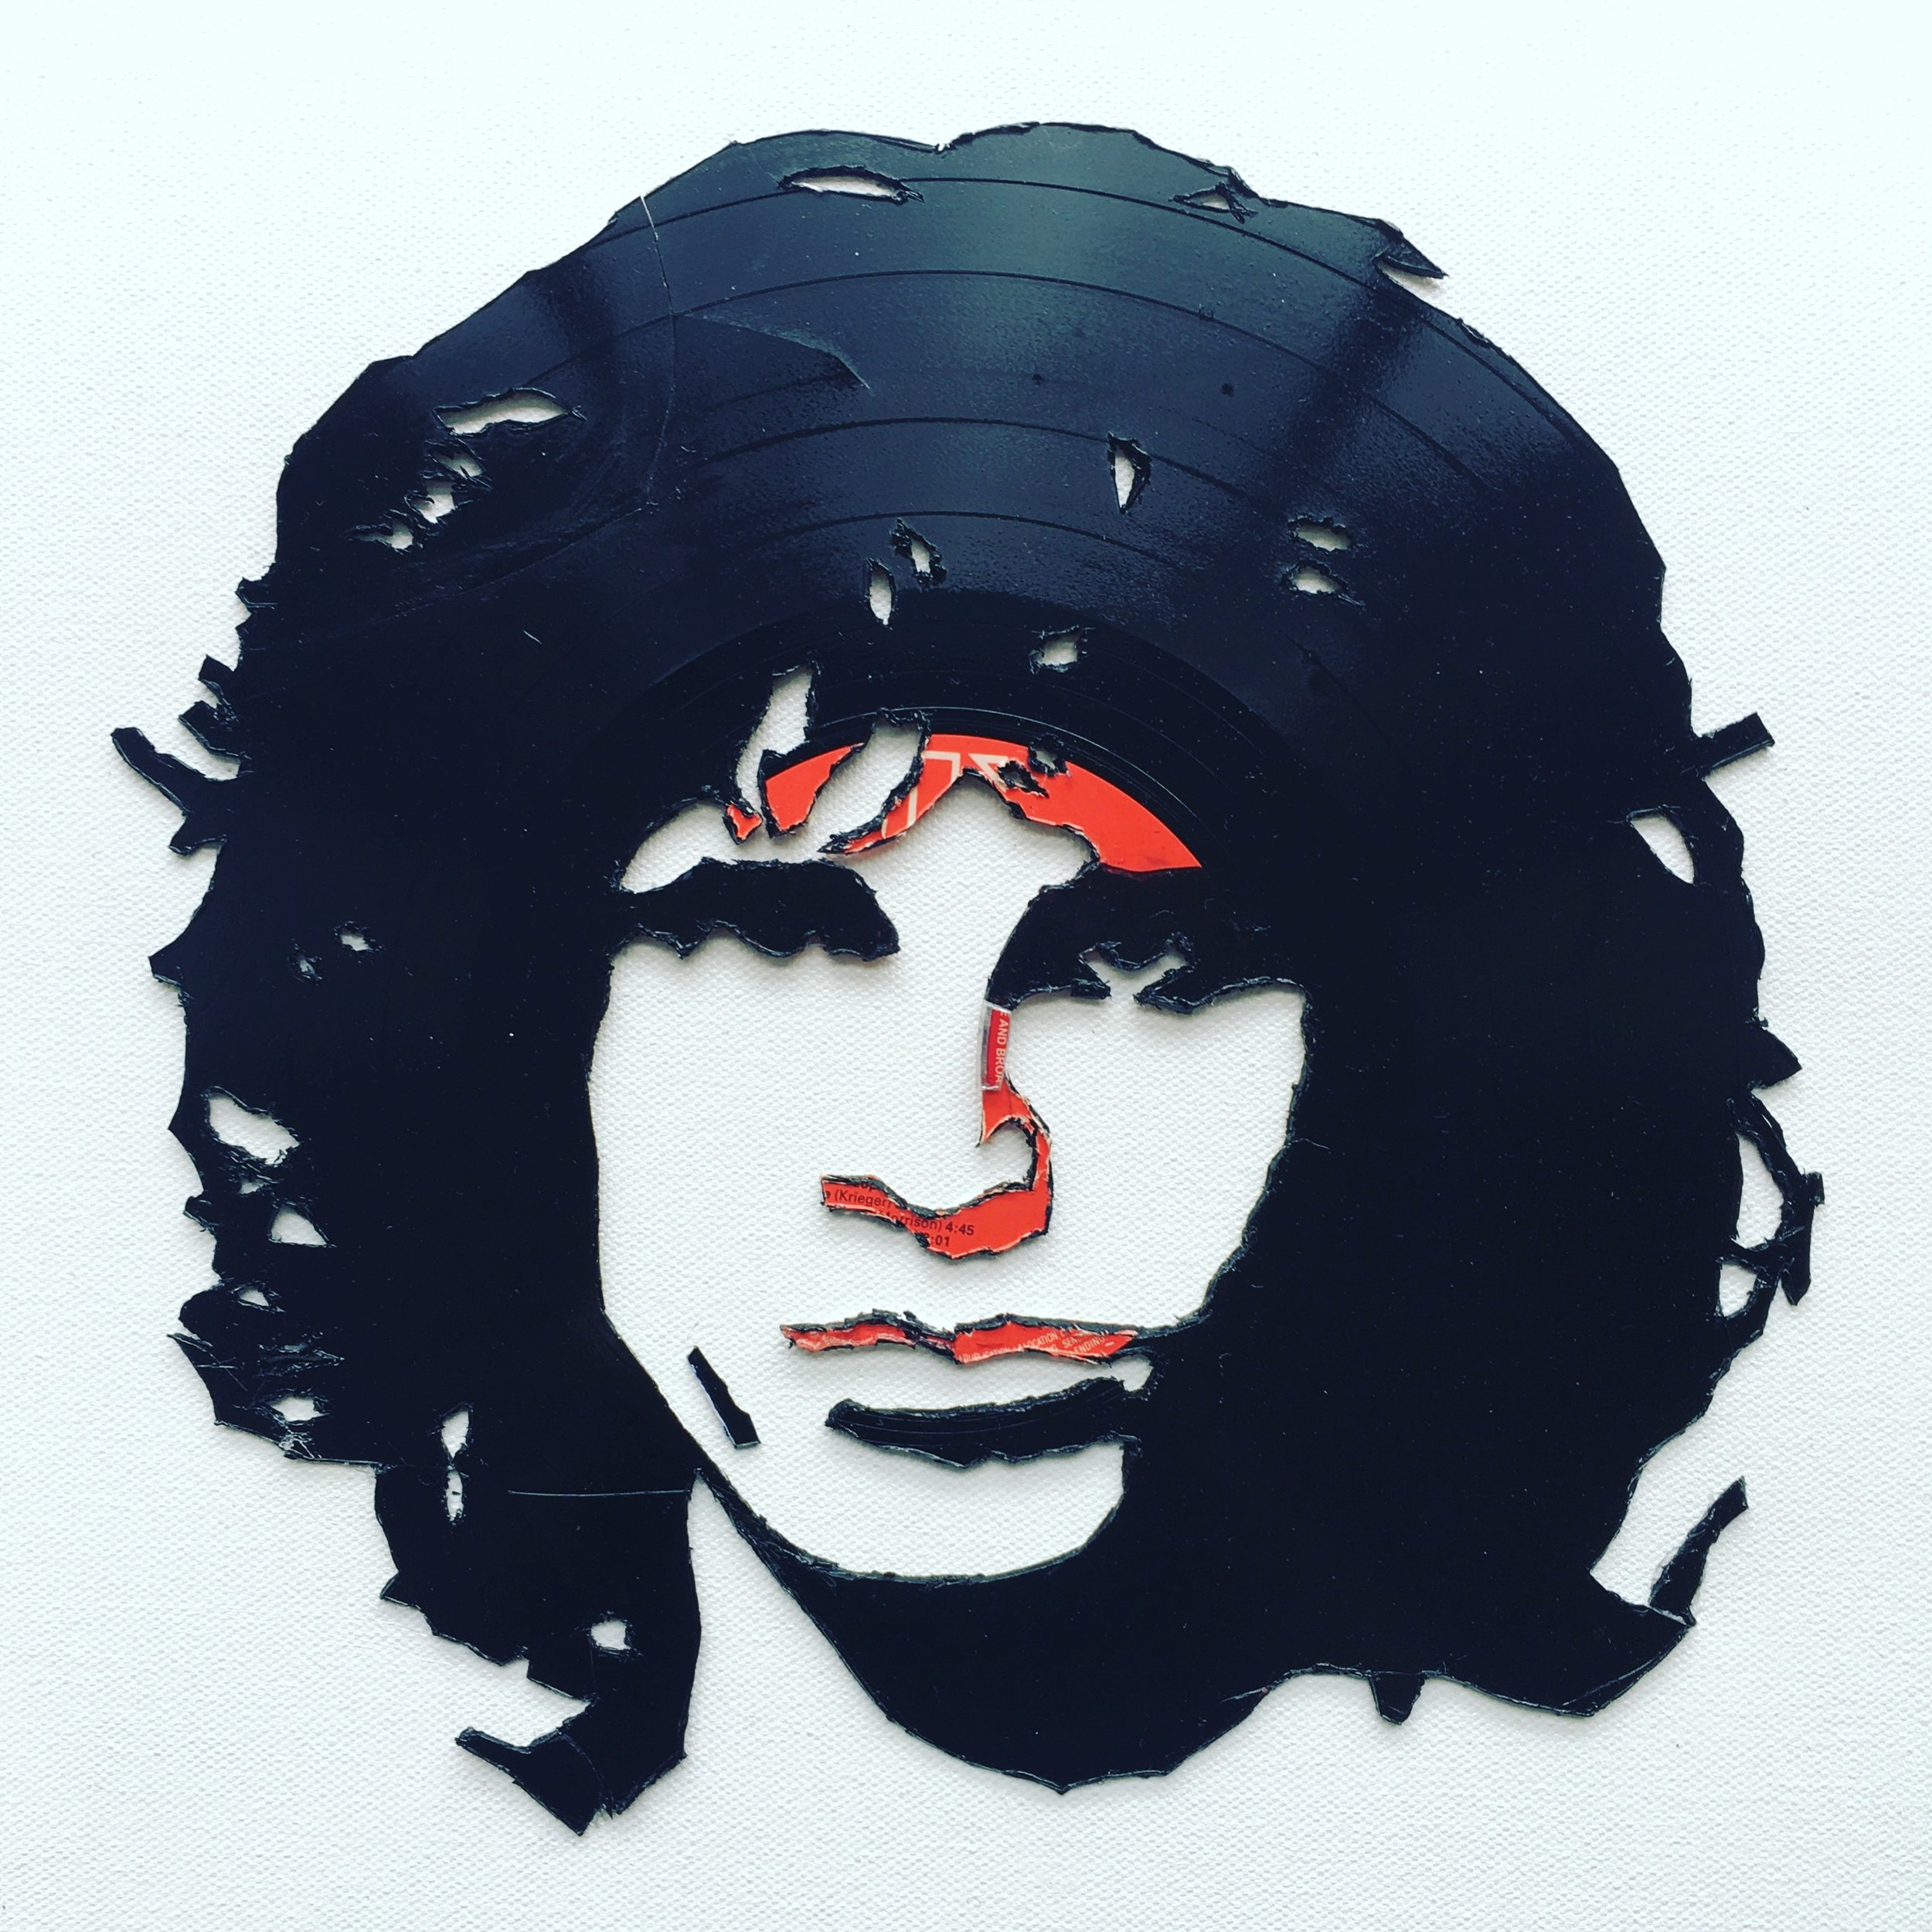 Copy of The Lizard King, 2017